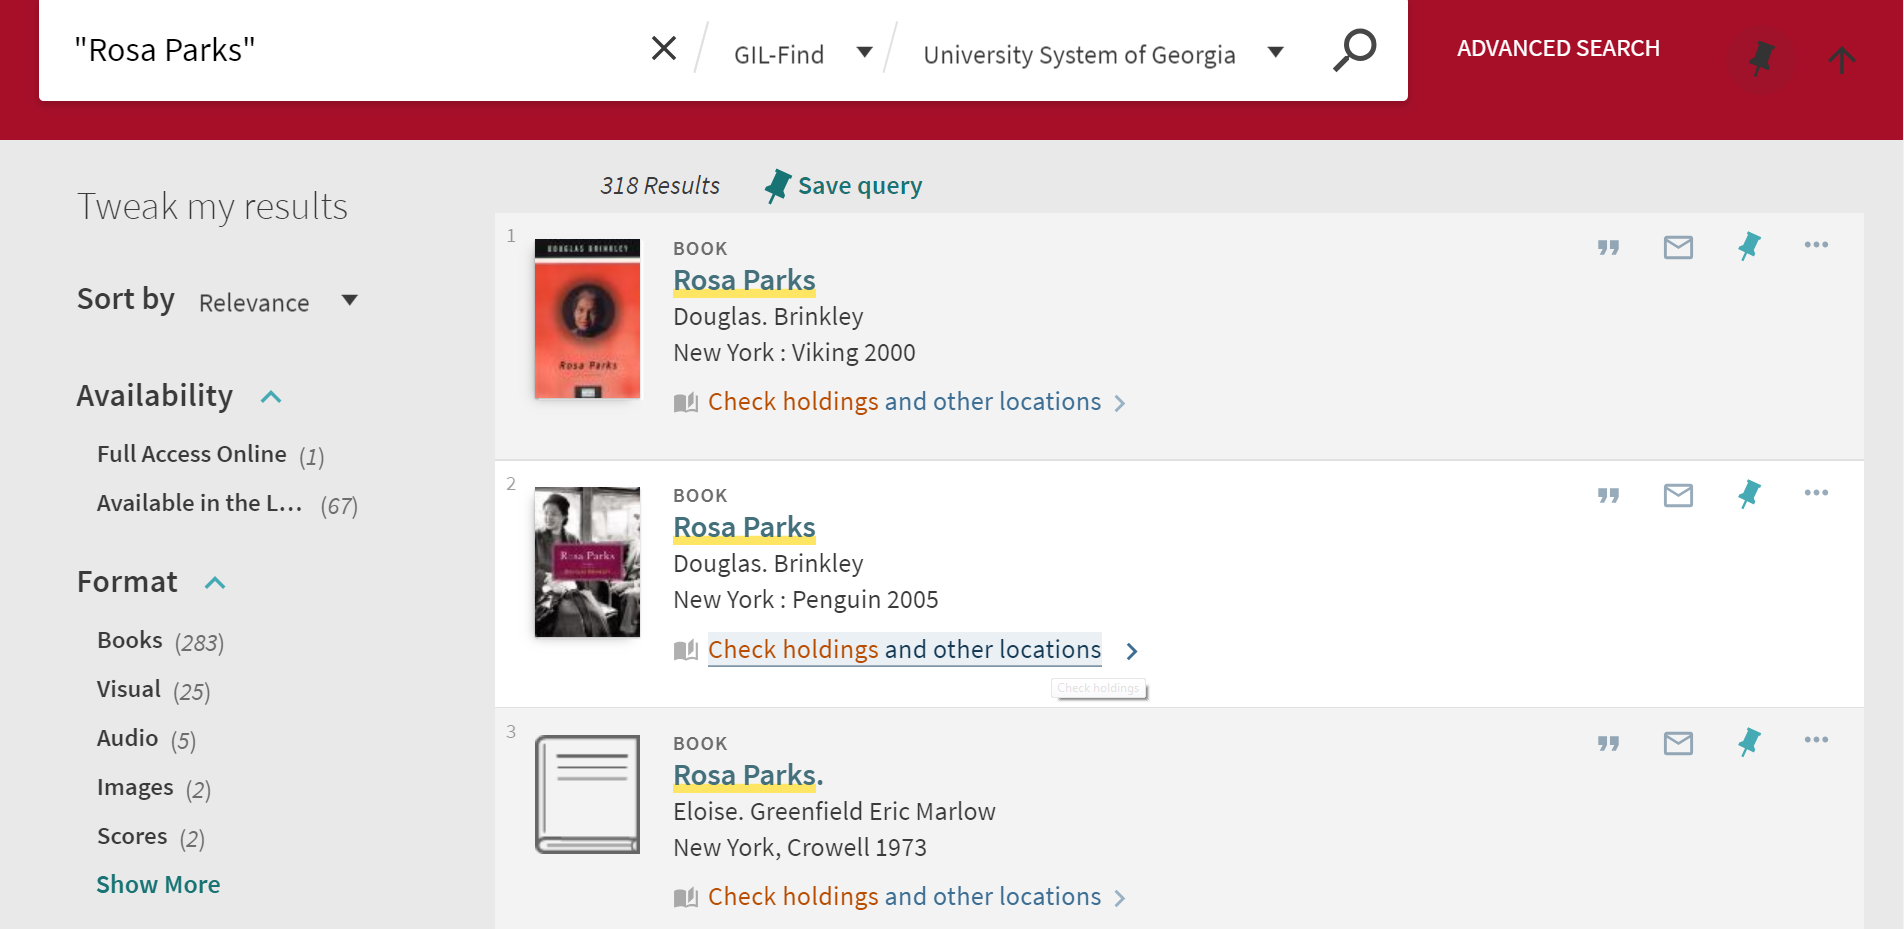 "Search results for ""Rosa Parks"" in the University System of Georgia. Check holdings and other locations is underlined in the second entry"